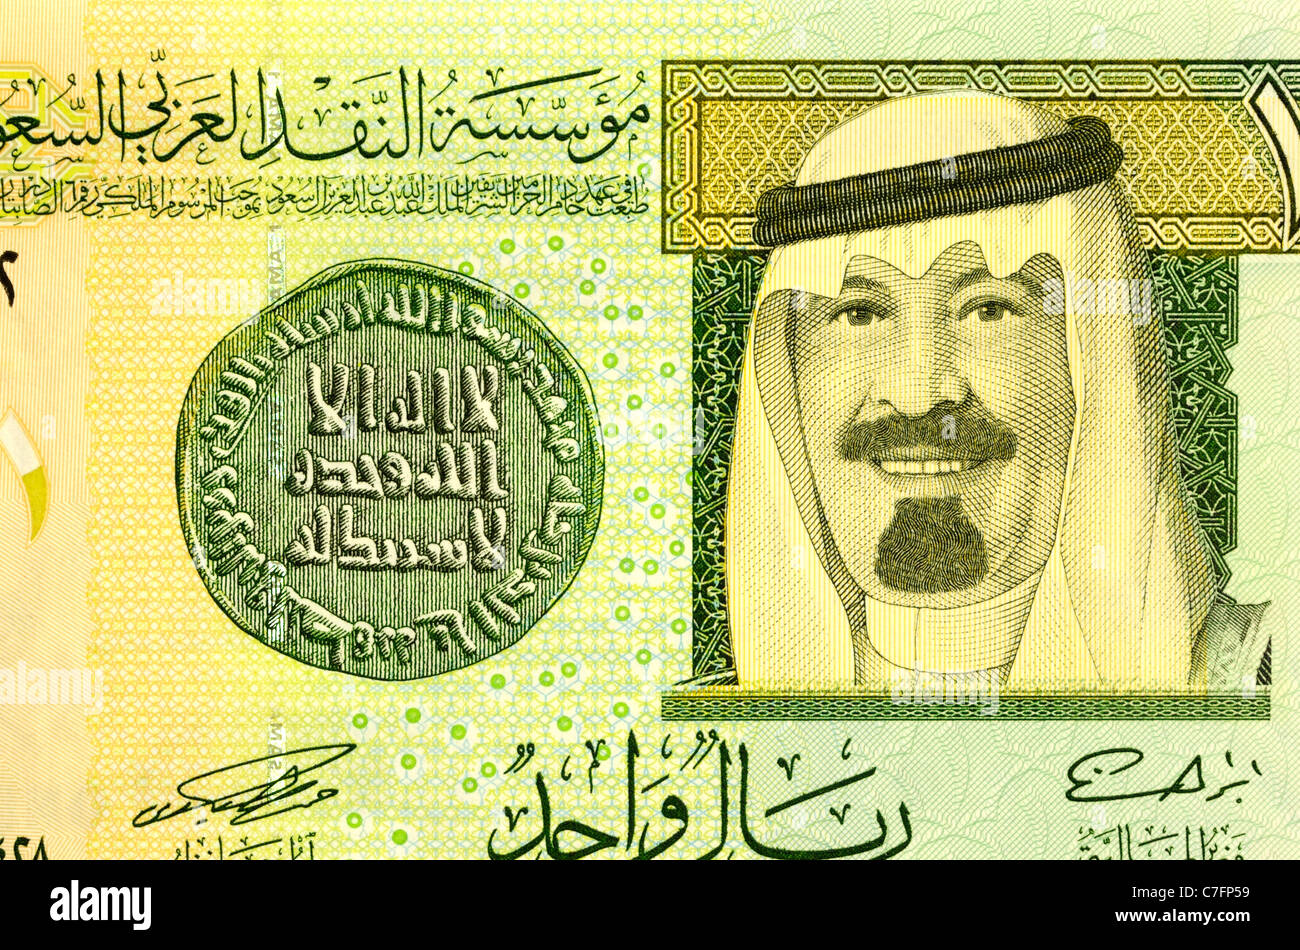 L'Arabie saoudite 1 Riyal un billet de banque. Photo Stock